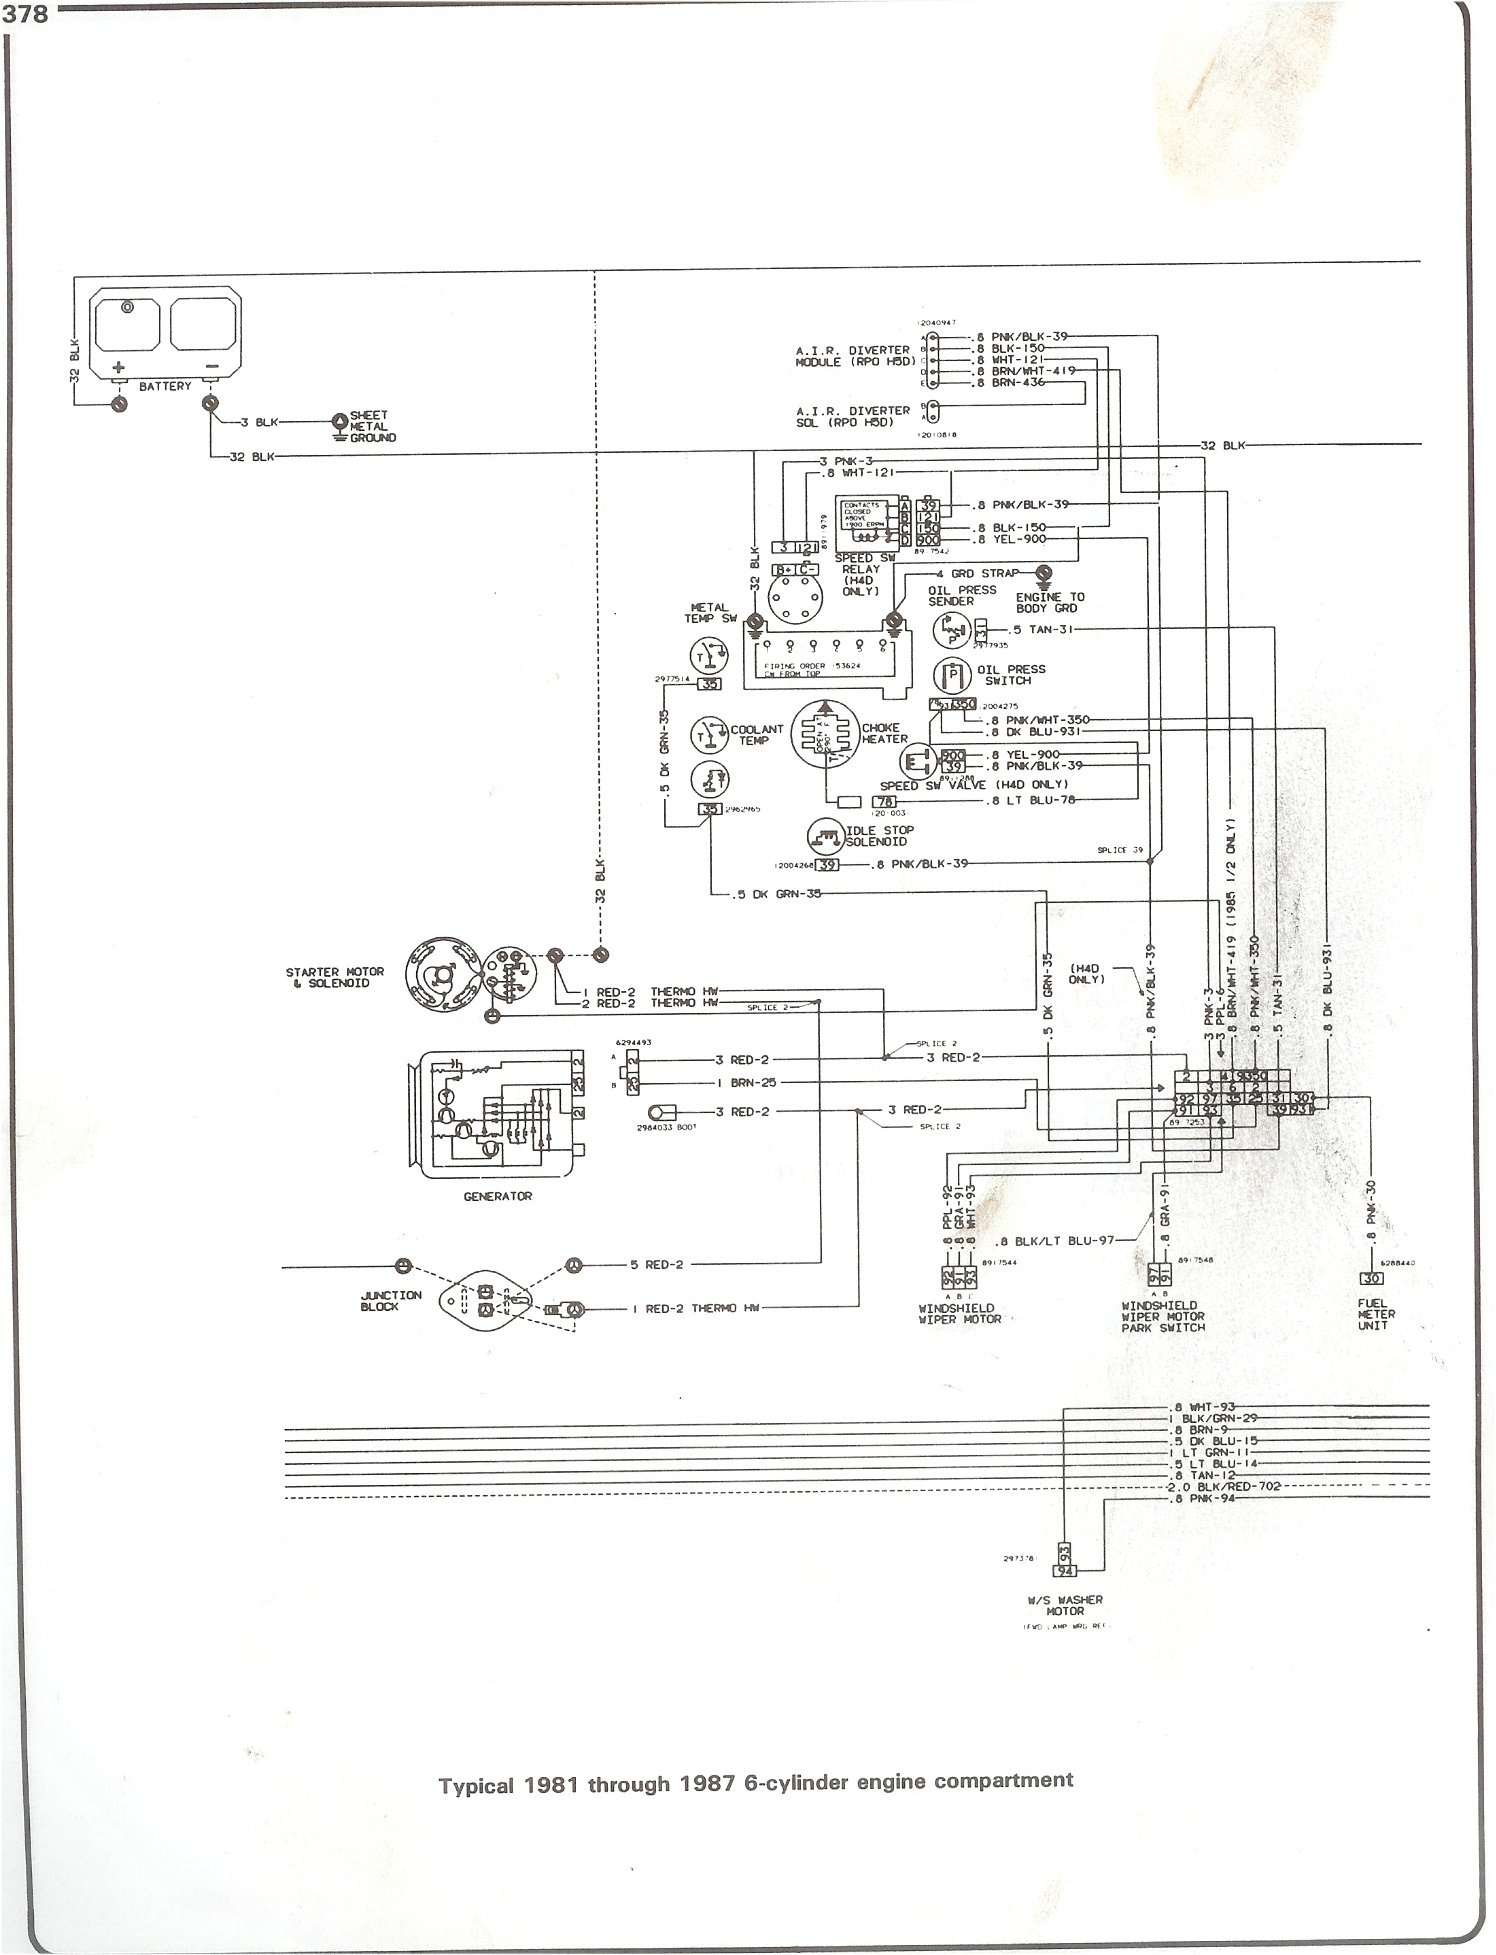 Brake Light Switch Wiring Diagram Blazer Forum Chevy Forums Lamp Schematics 81 87 I6 Engine Compartment